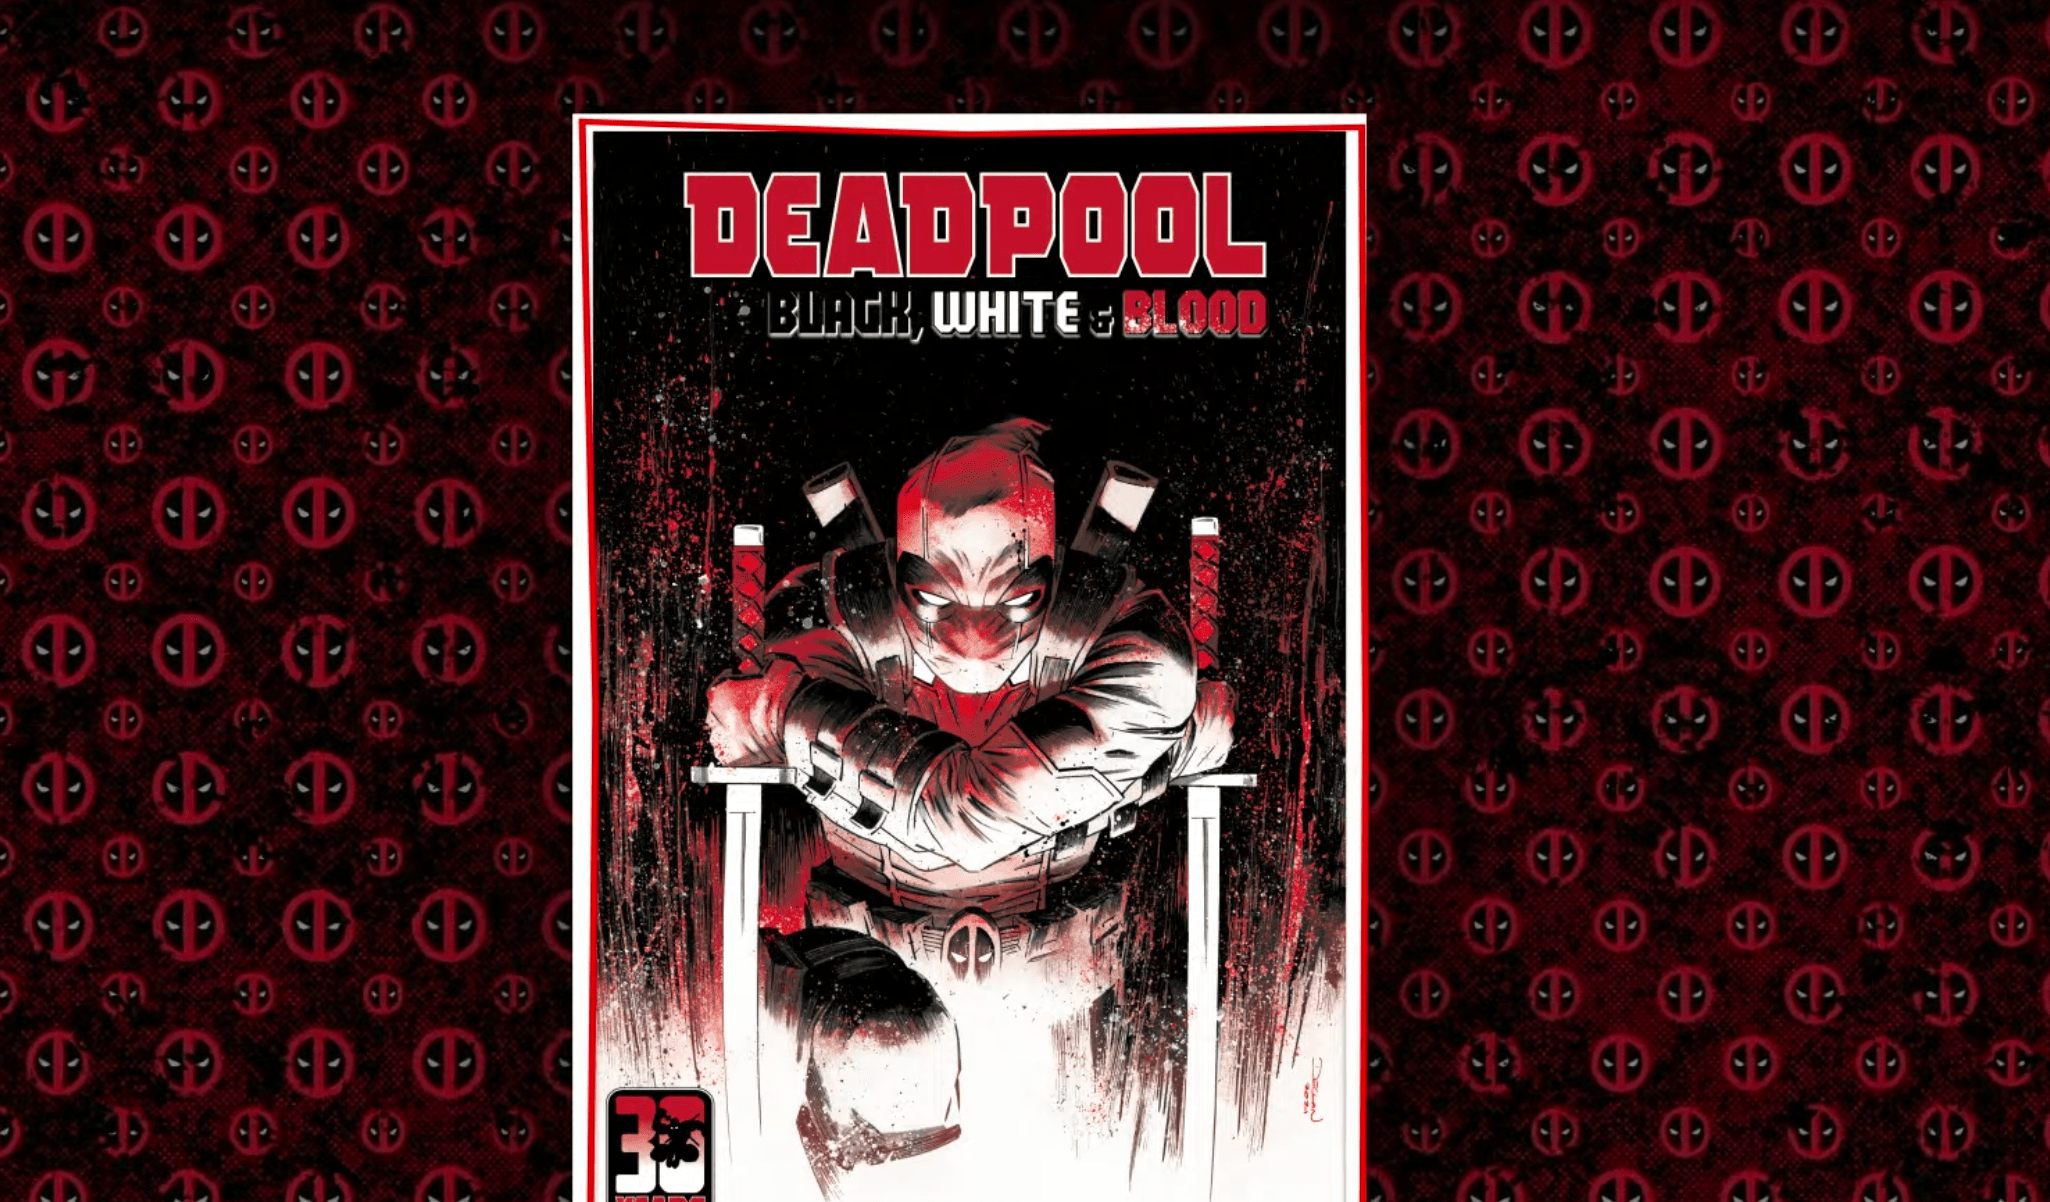 C.B. Cebulski announces 'Deadpool: Black, White & Blood' for later this year